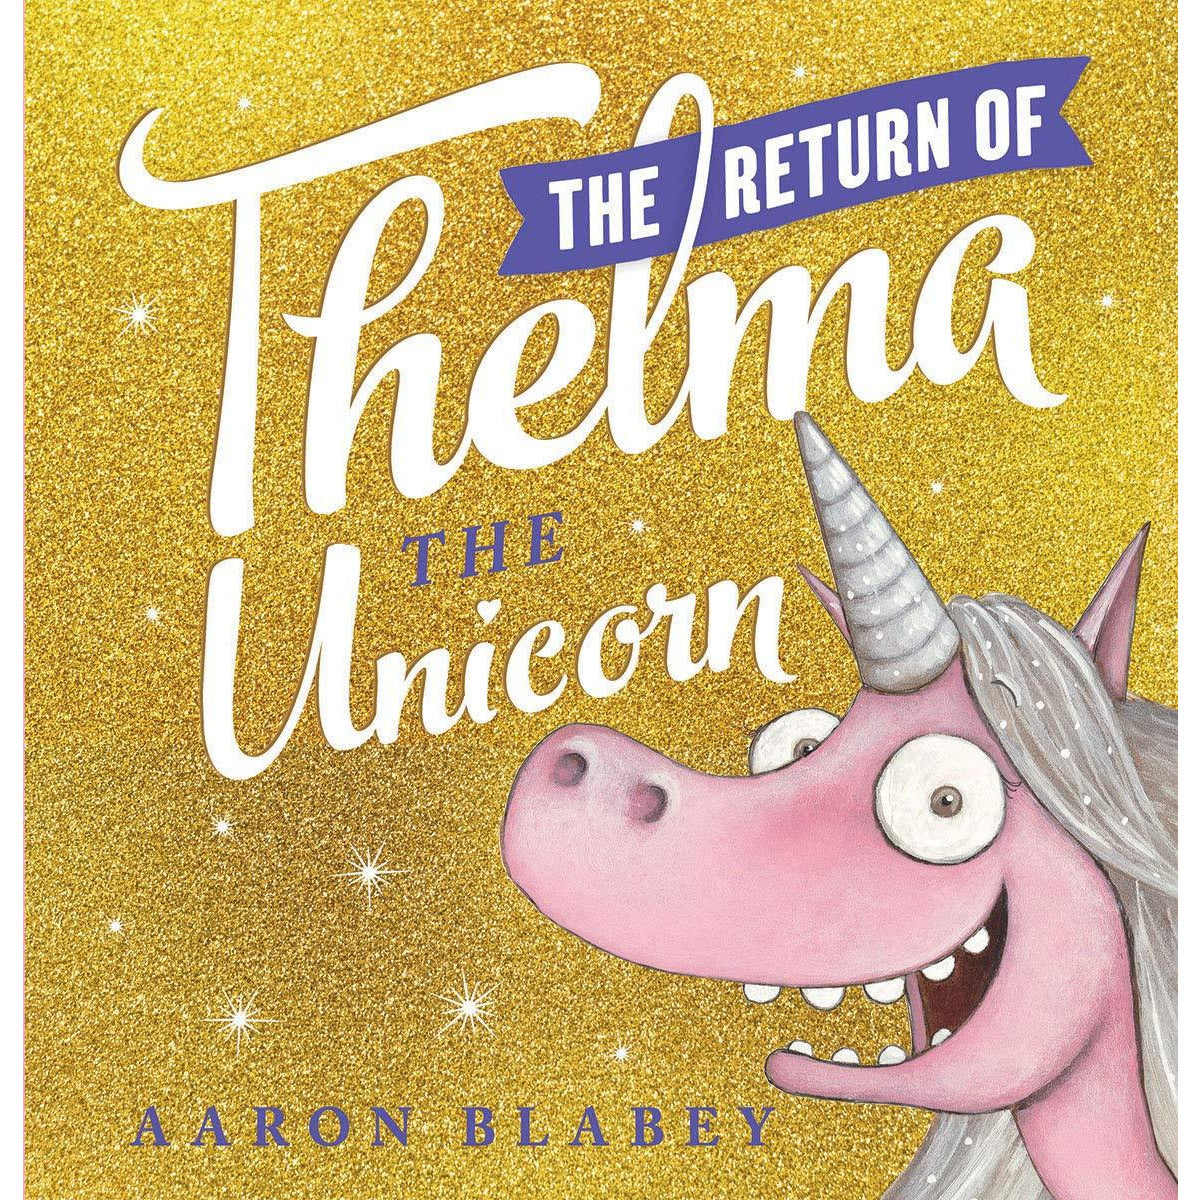 The Return of Thelma the Unicorn canada ontario book aaron blabey